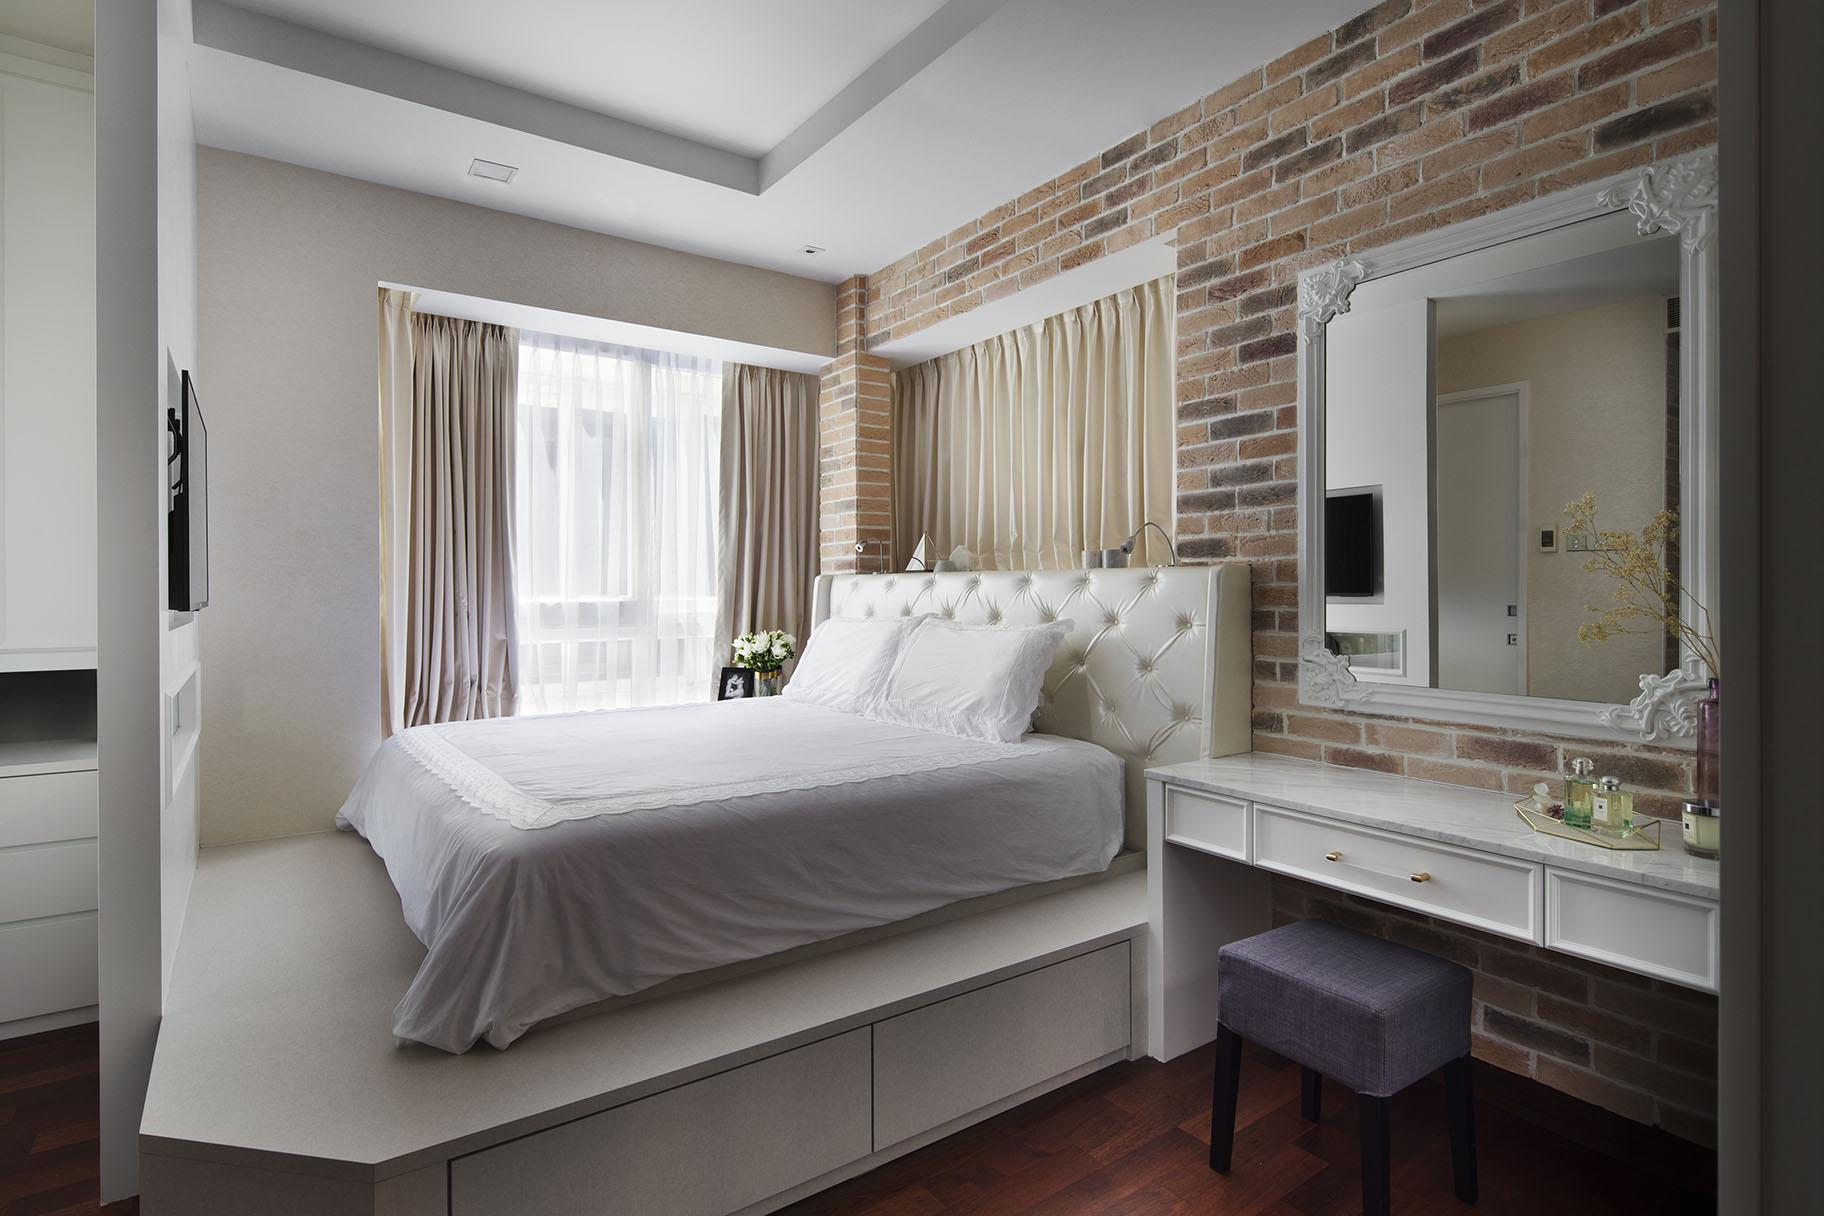 Interior Design For Bedroom by SYRB ID Firm in Singapore